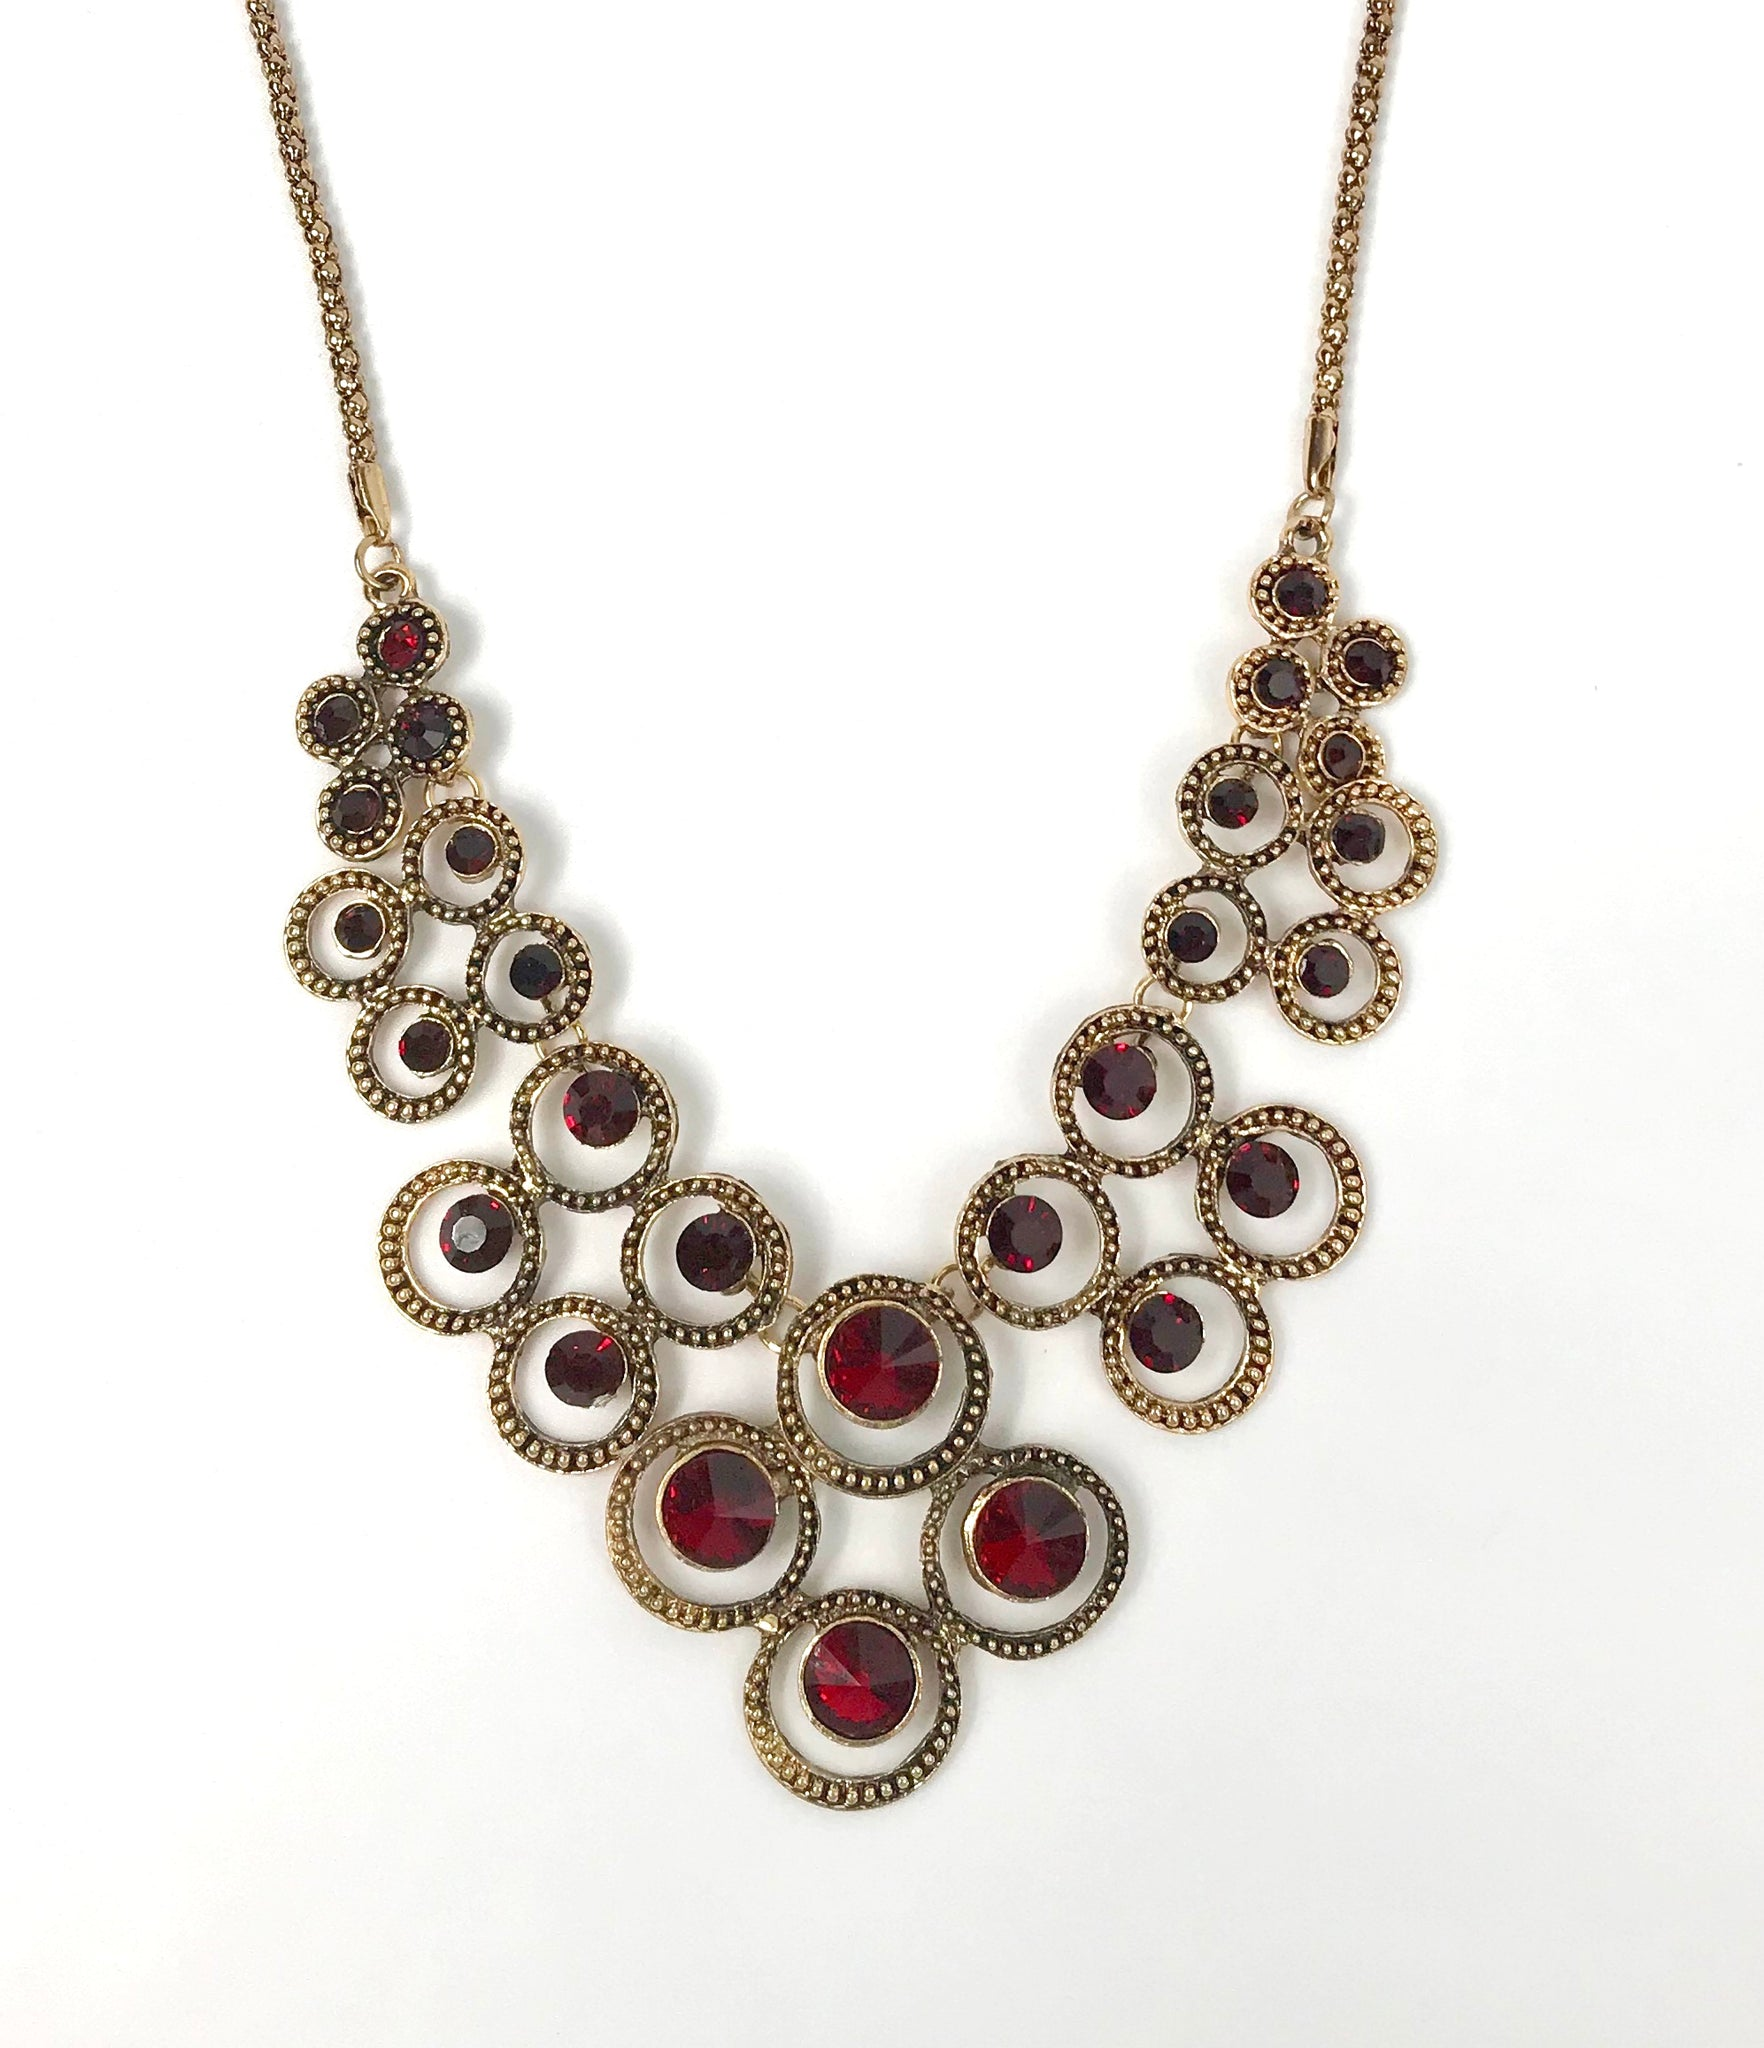 Gold and Dark Red Necklace